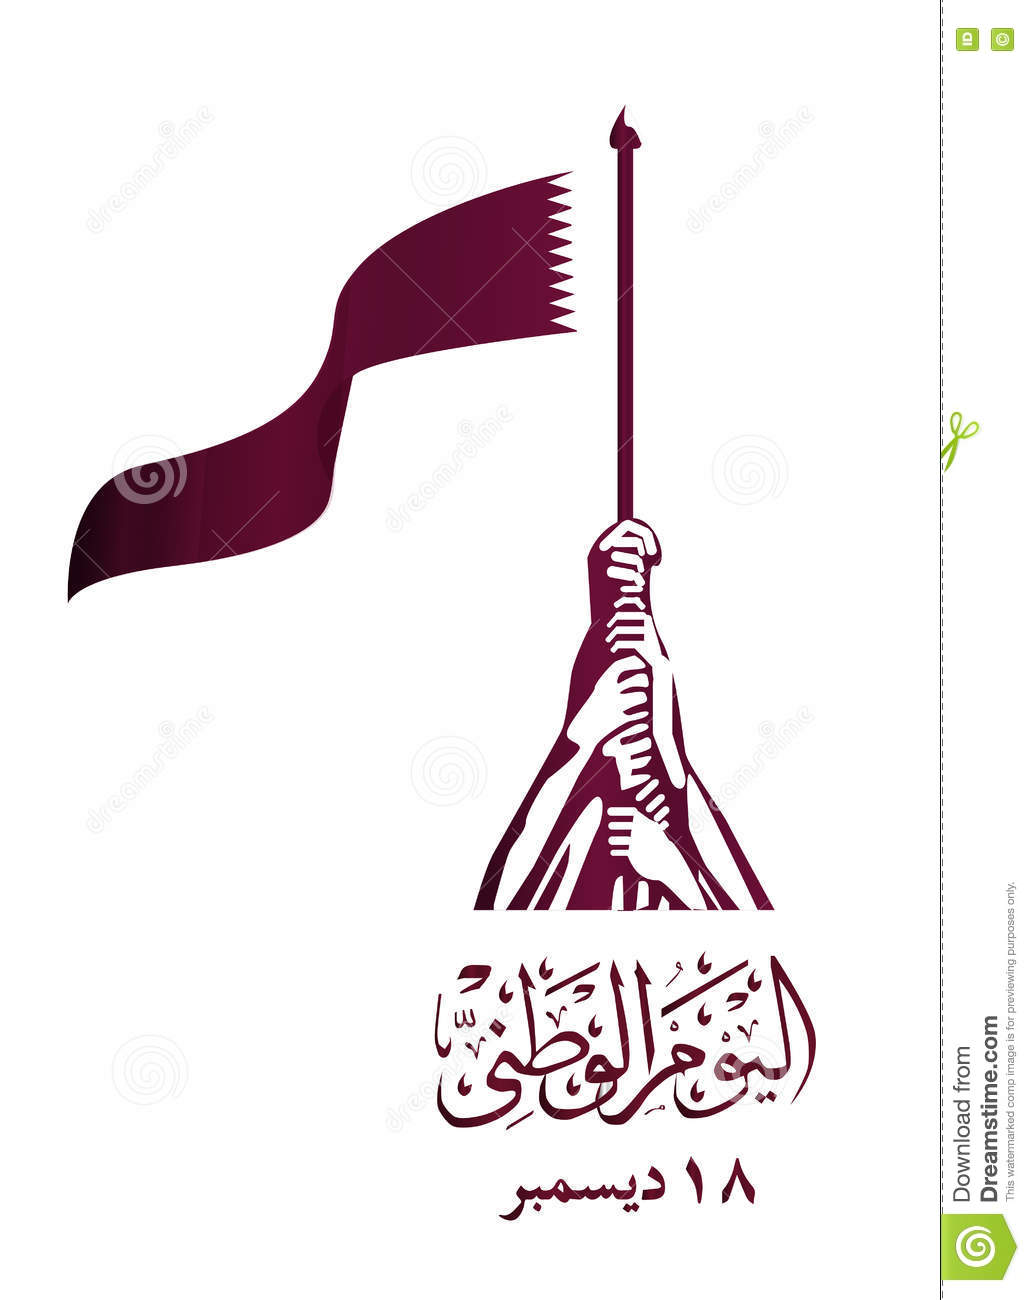 Logo of national day celebration of Qatar. translation: Qatar national day December 18